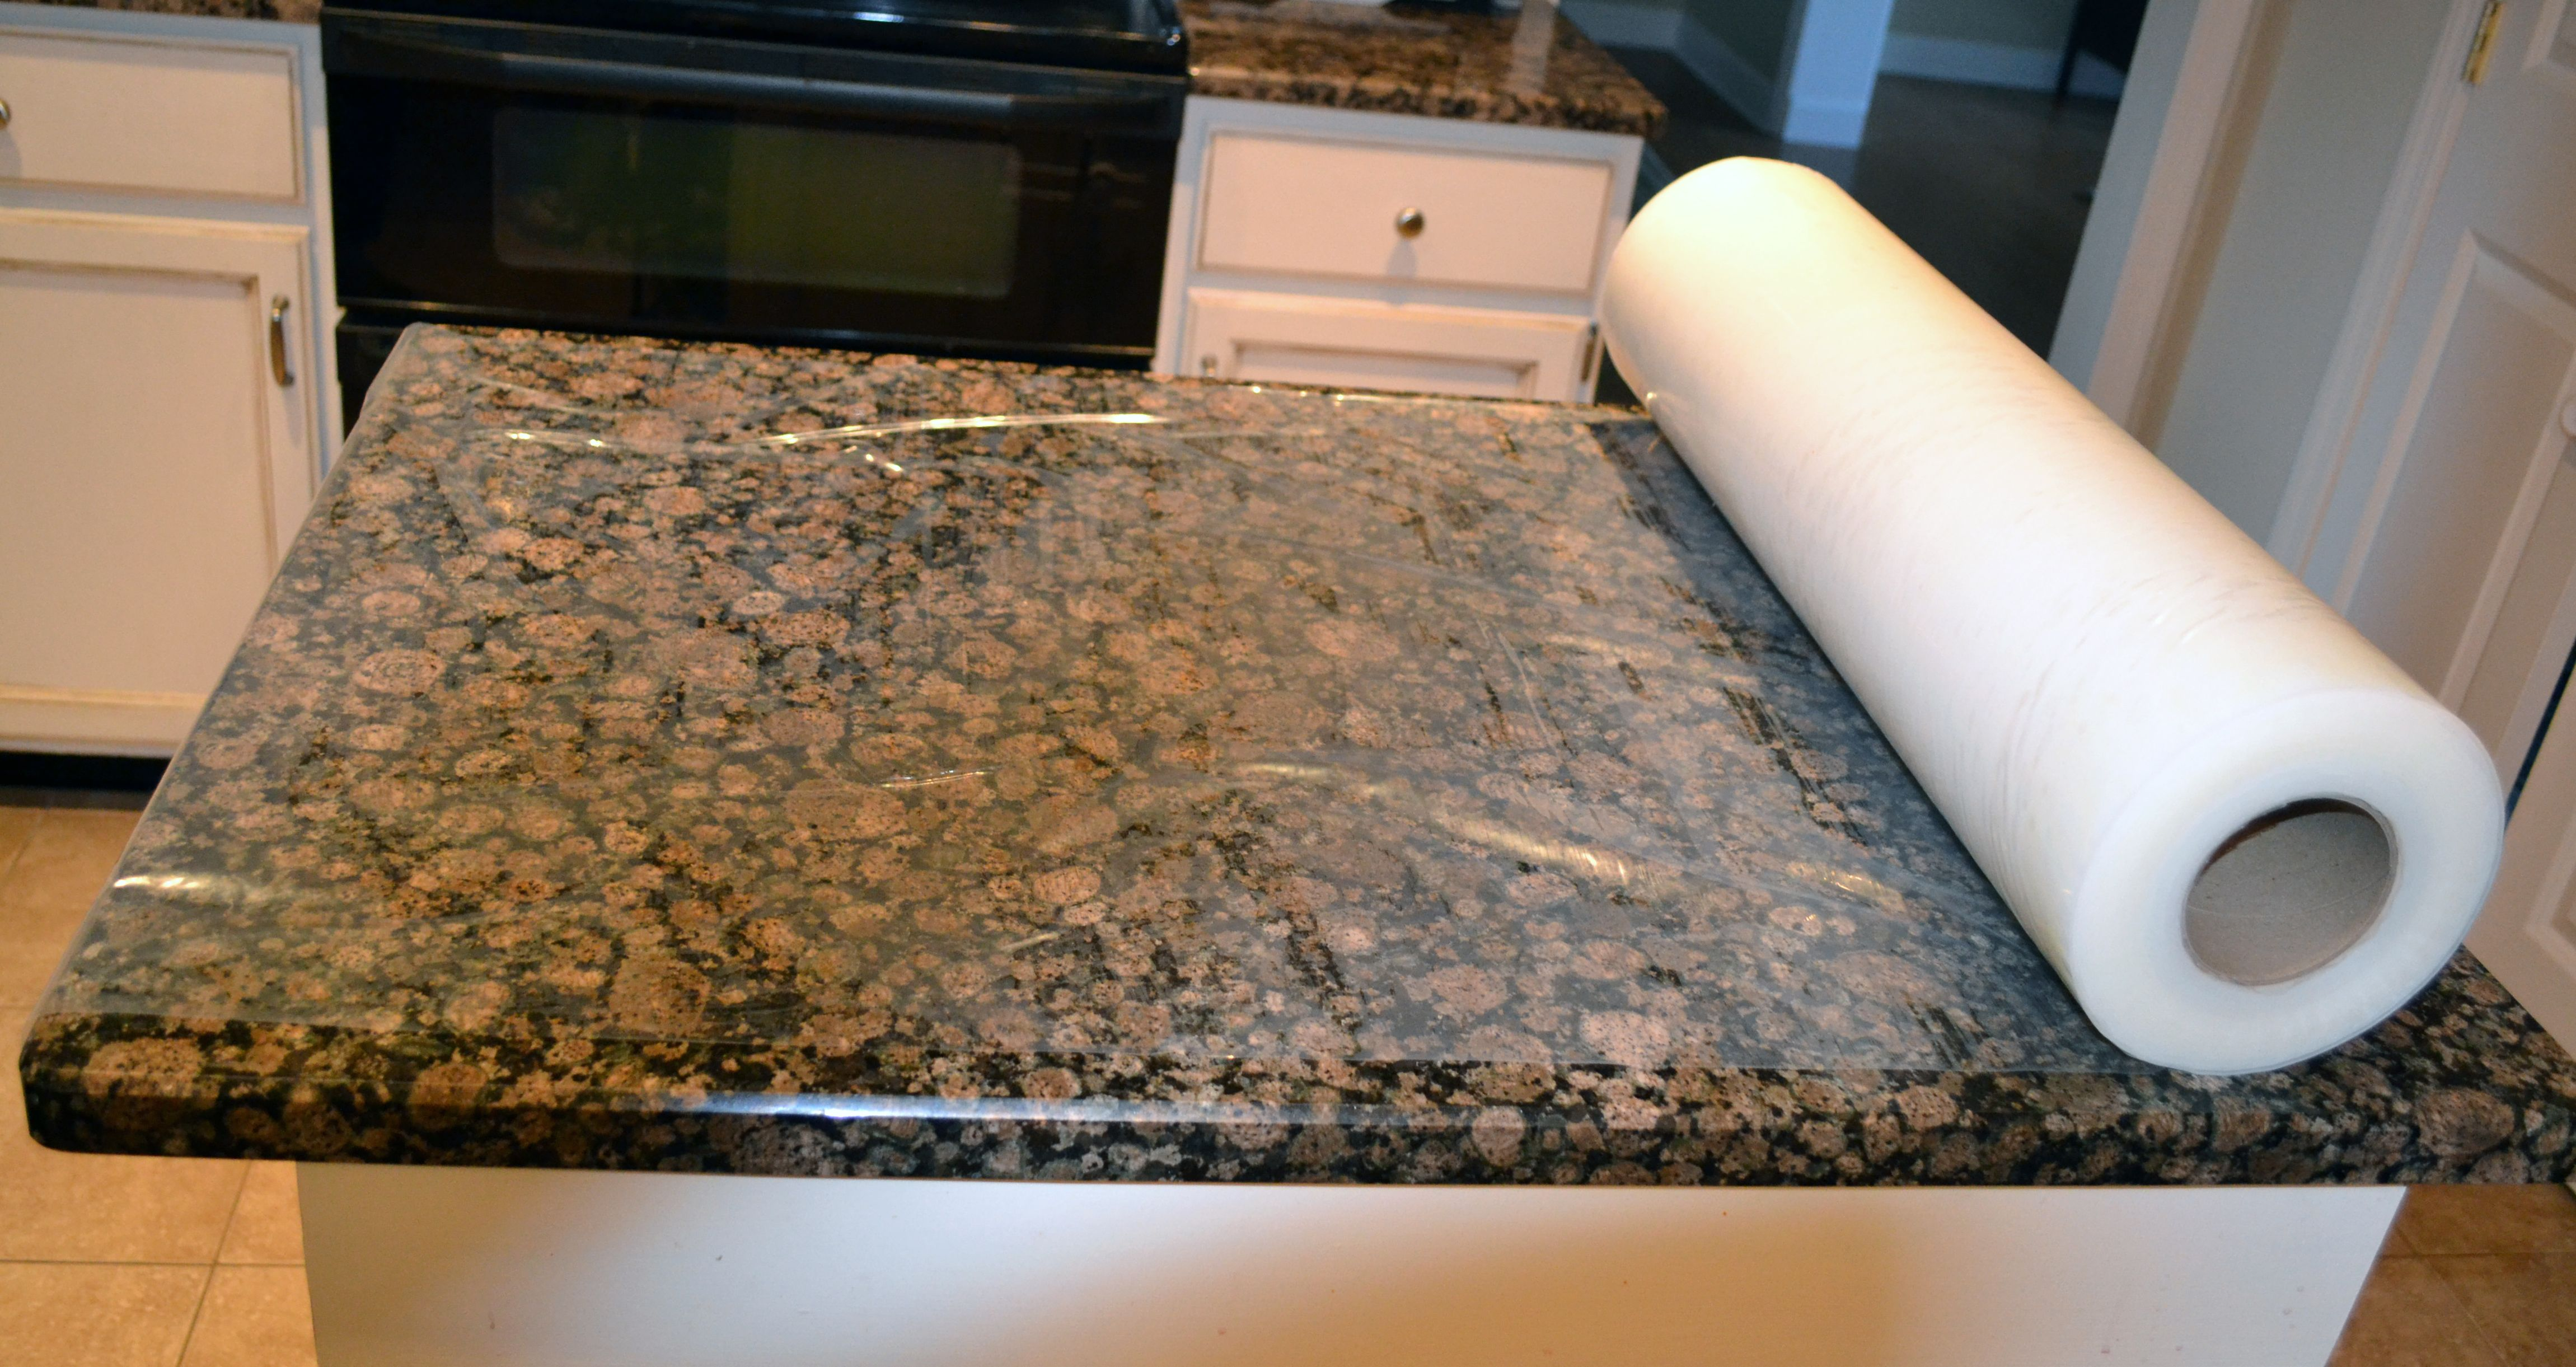 feather to need countertop all countertops know decor kitchen ardex temporary about you spring concrete finish farmhouse cover